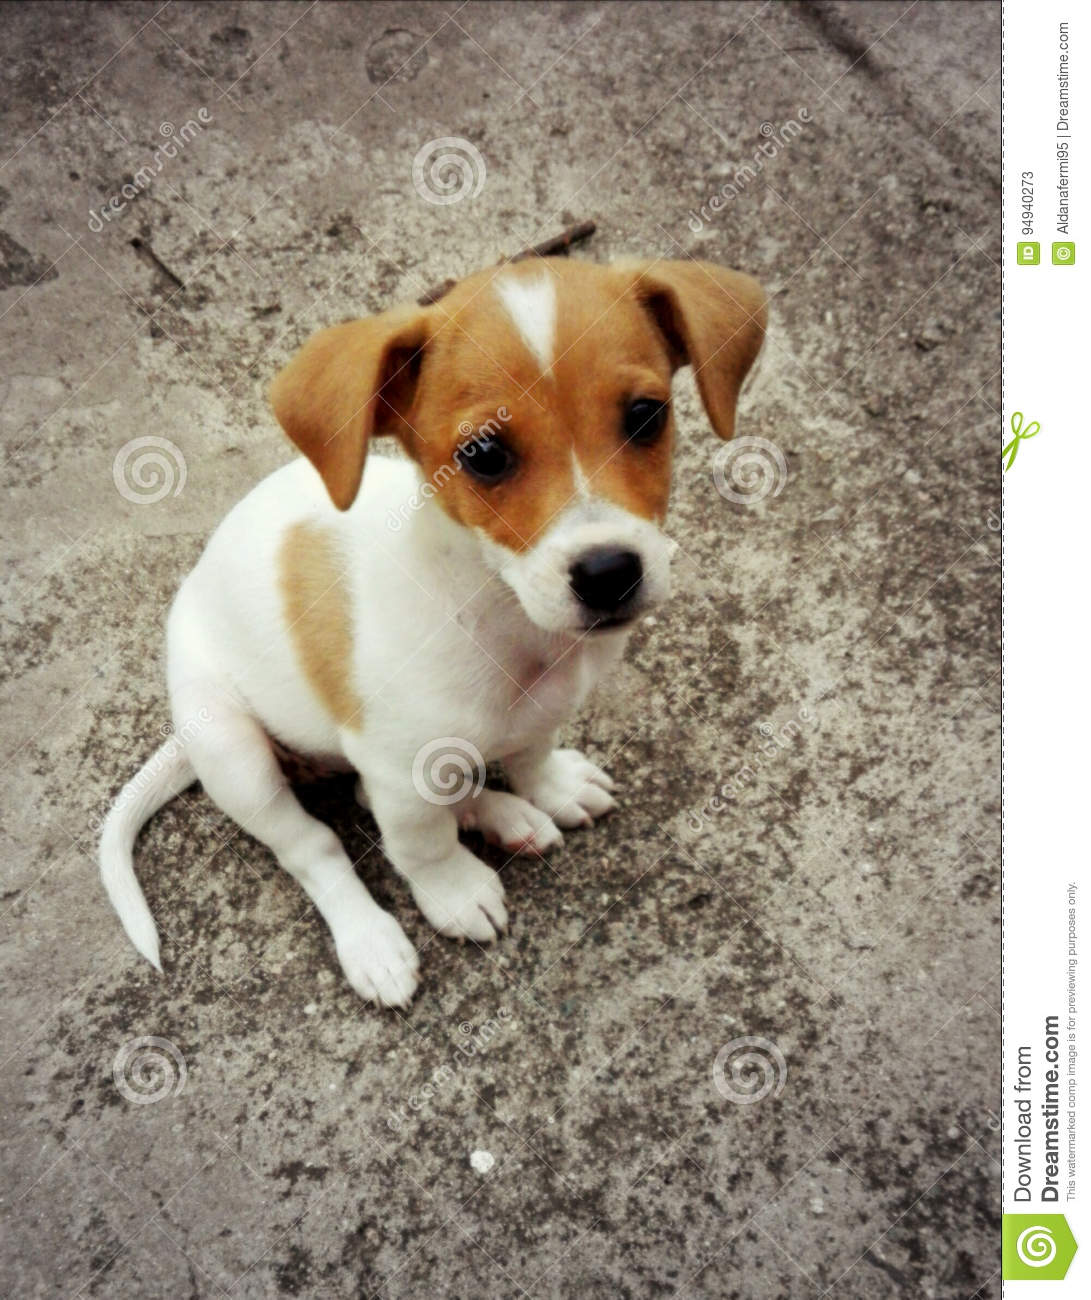 Super Cute Puppy Stock Image Image Of Animals Look 94940273